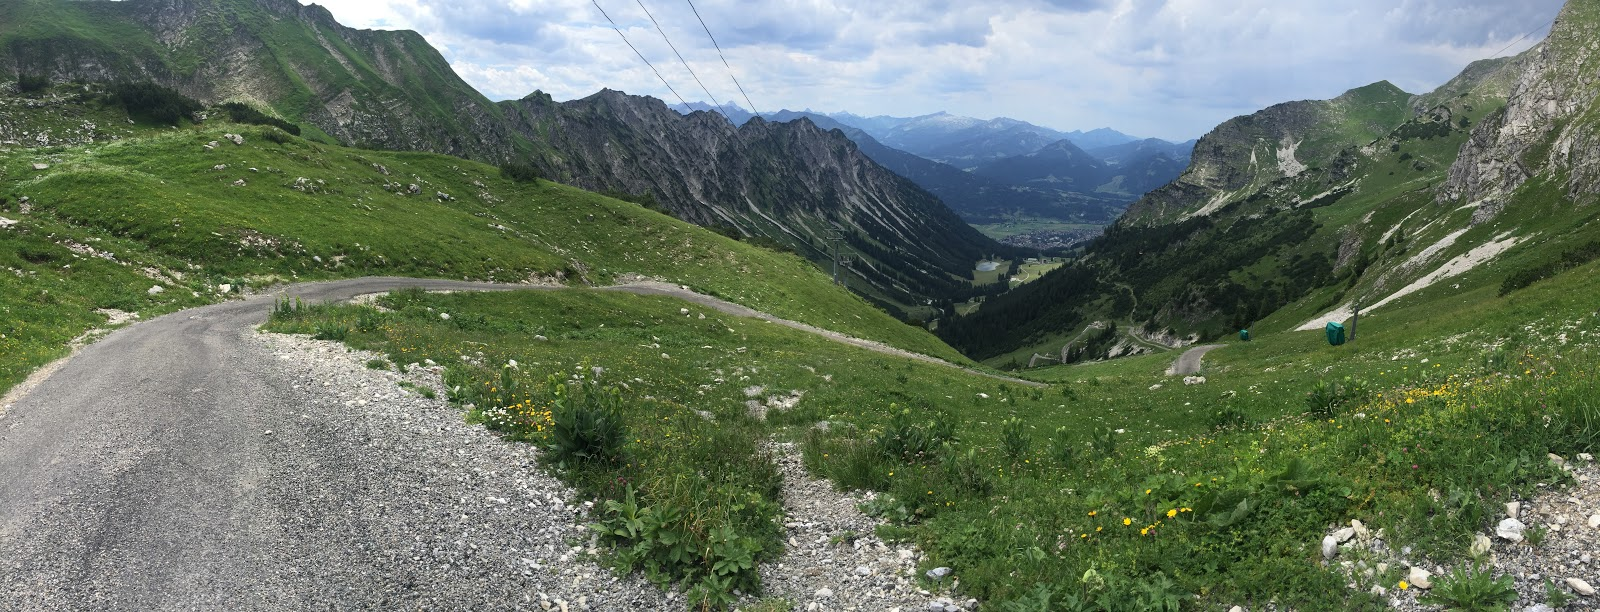 Neblhorn - Toughest bike climb in Germany - road, mountains, view down canyon